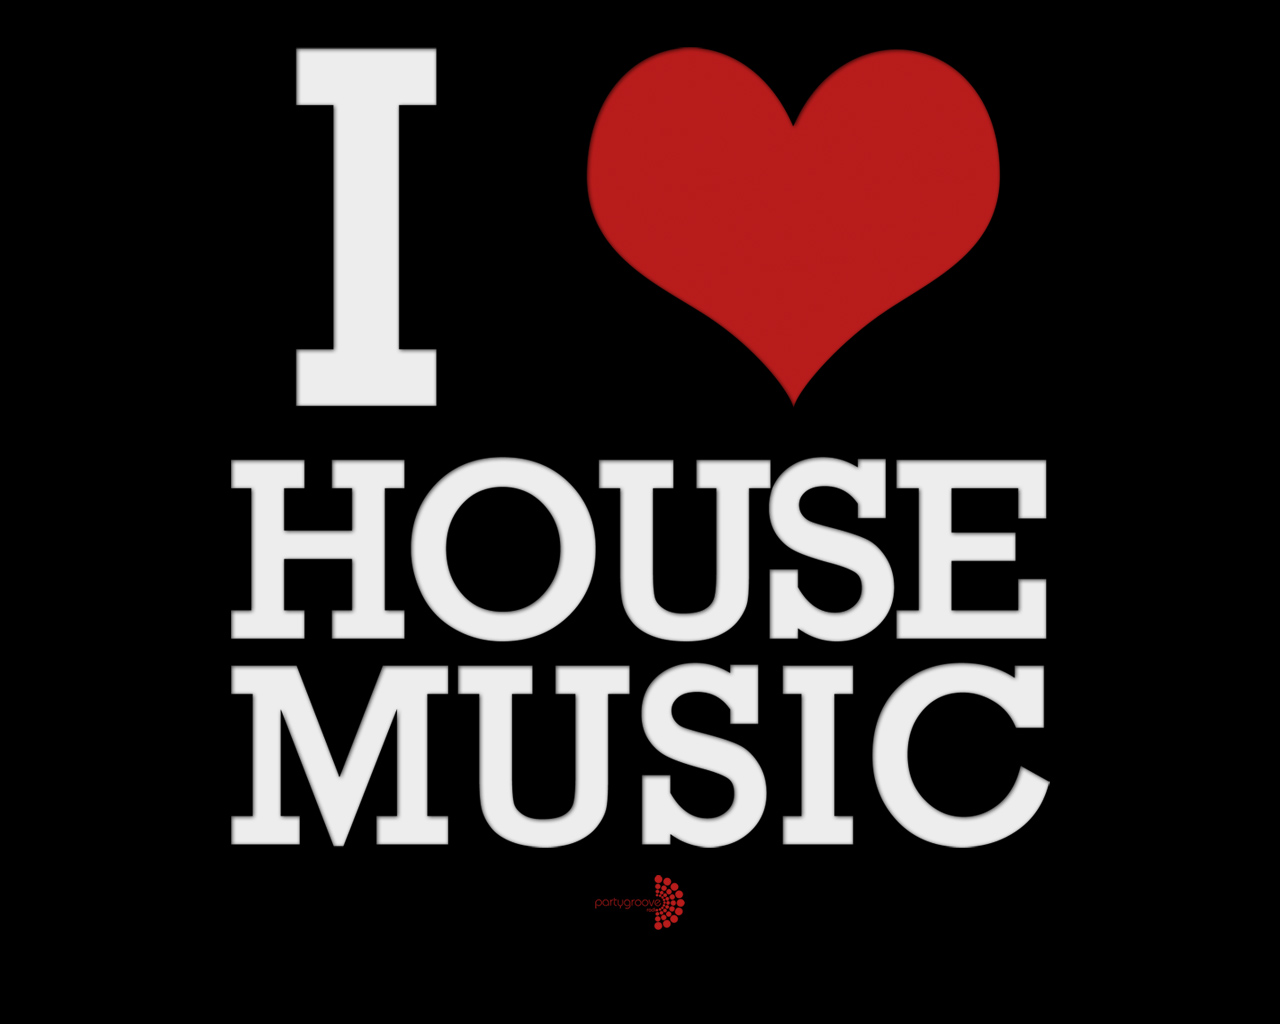 House music quotes quotesgram for House music images